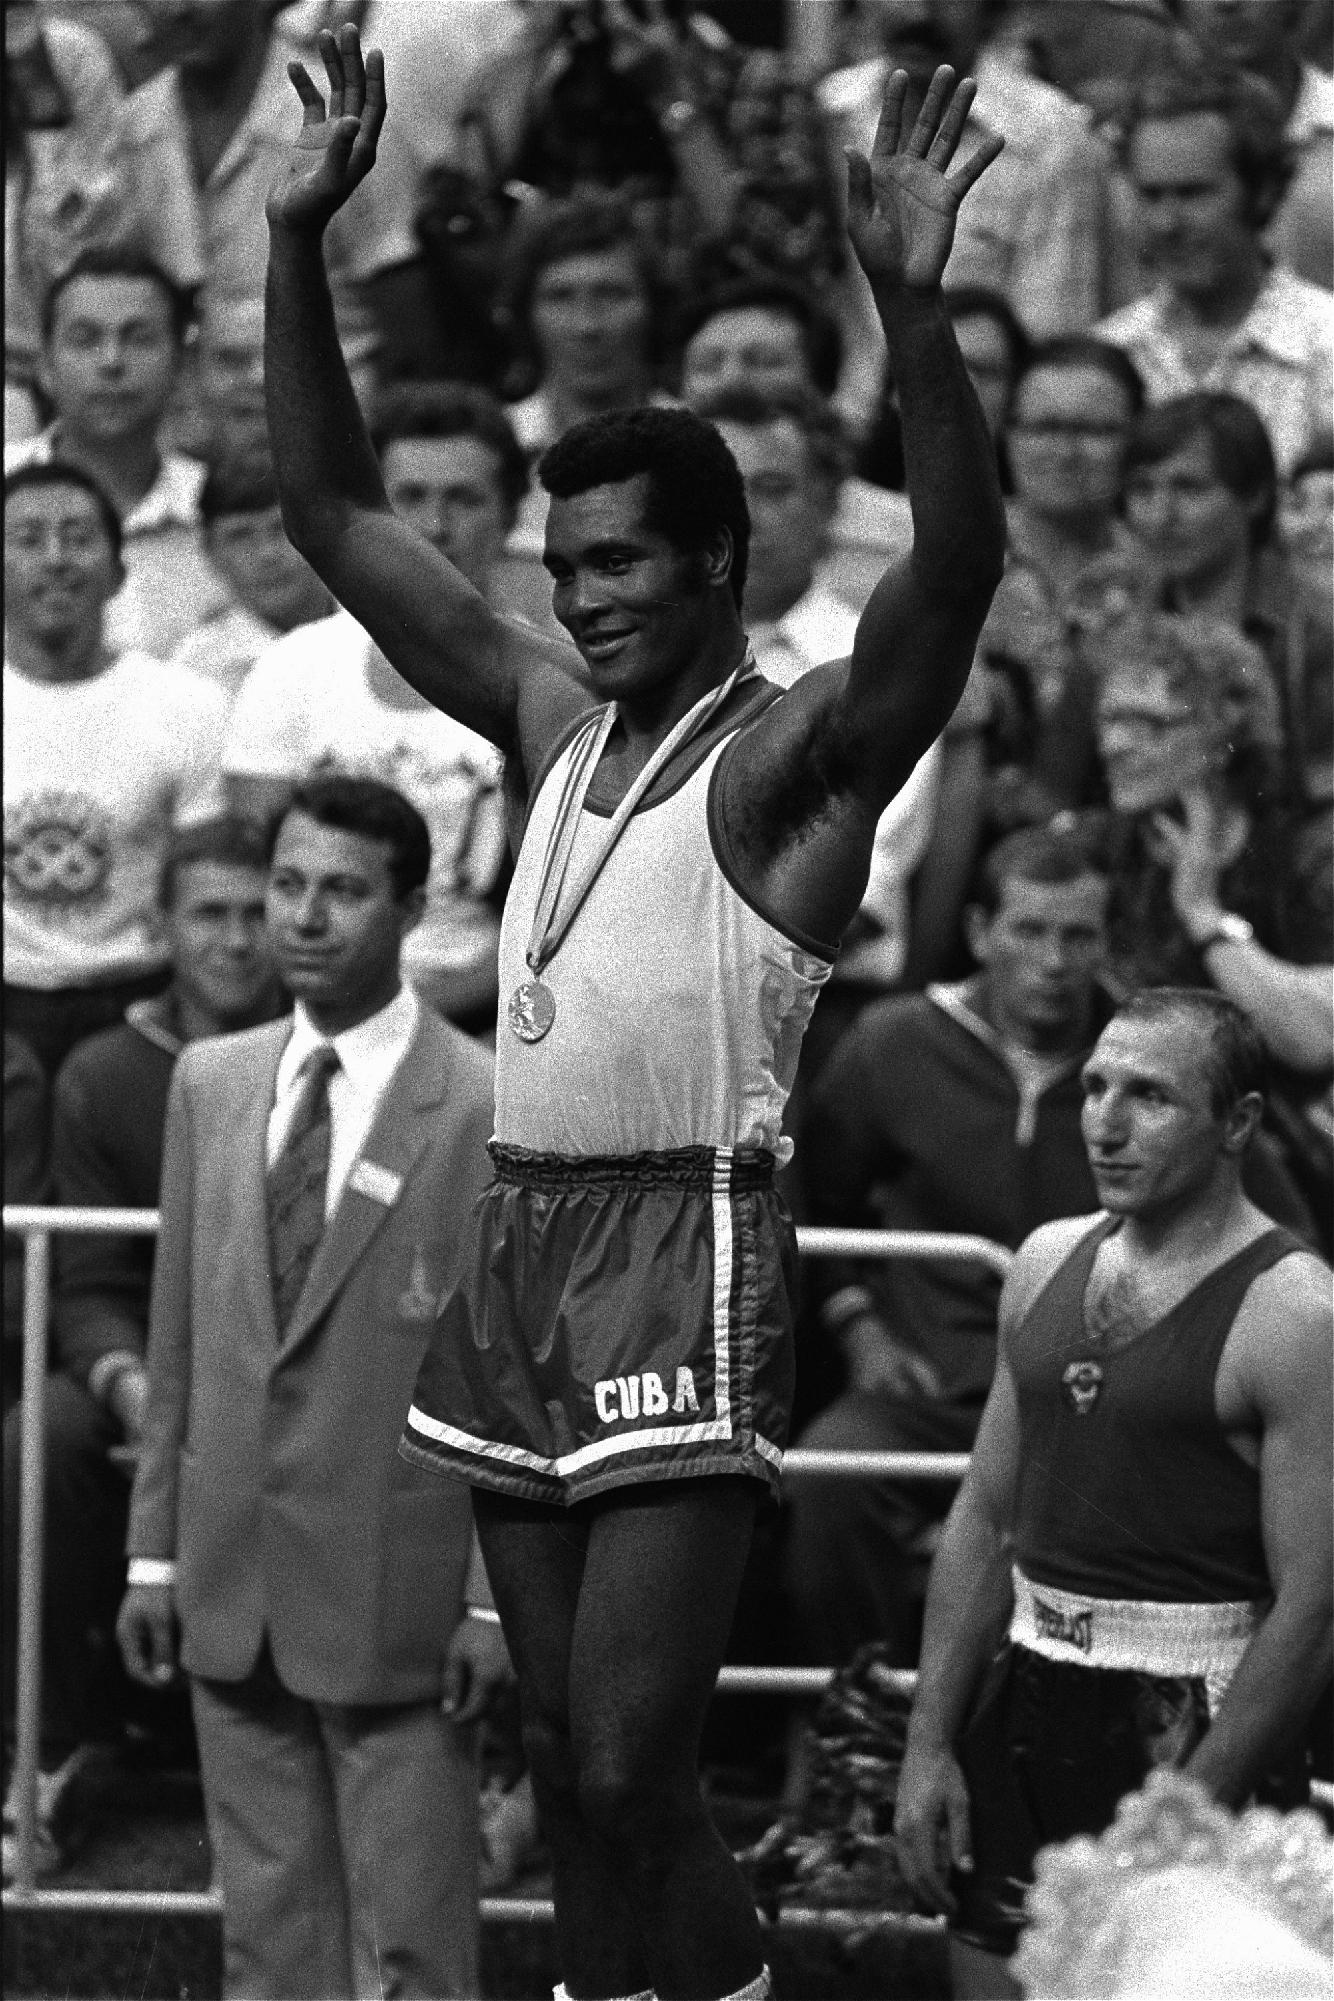 FILE - In this Aug. 2, 1980, file photo, after winning his third Olympic heavyweight championship gold medal, Cuba's Teofilo Stevenson waves to the crowd at the Moscow Olympic Games. Stevenson died on Monday, June 11, 2012, at the age of 60. (AP Photo, file)